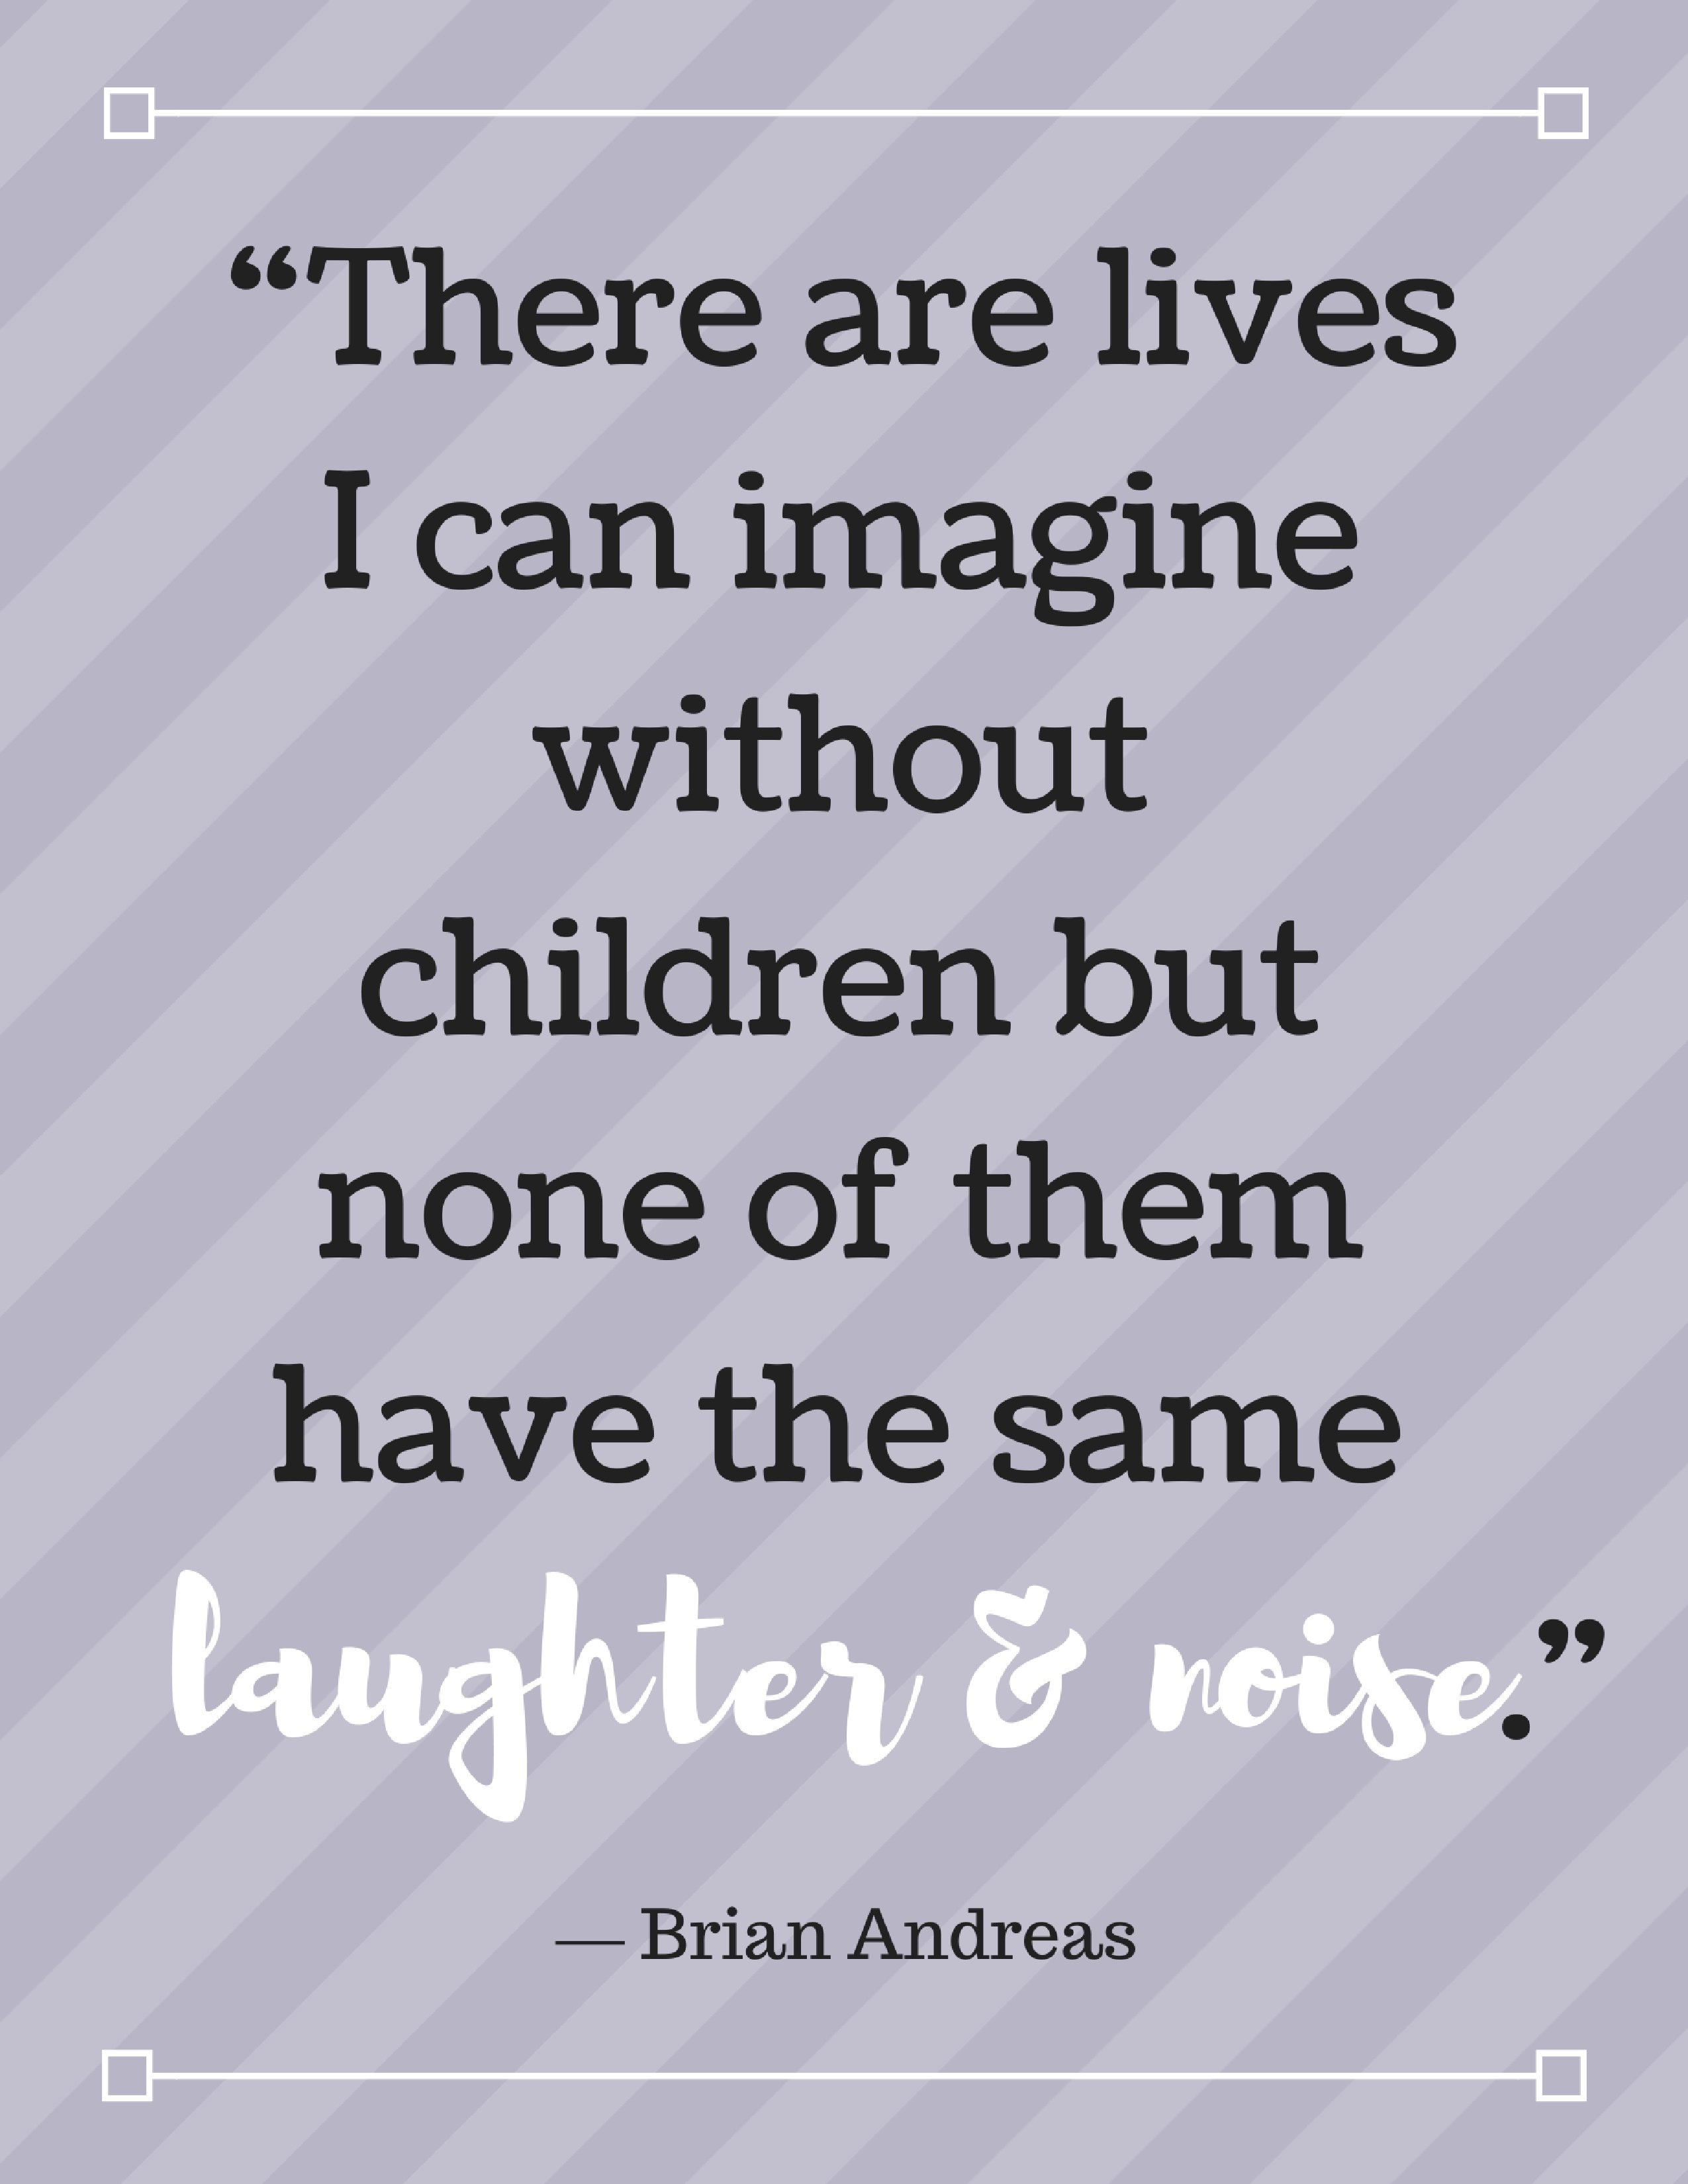 Laughter & Noise